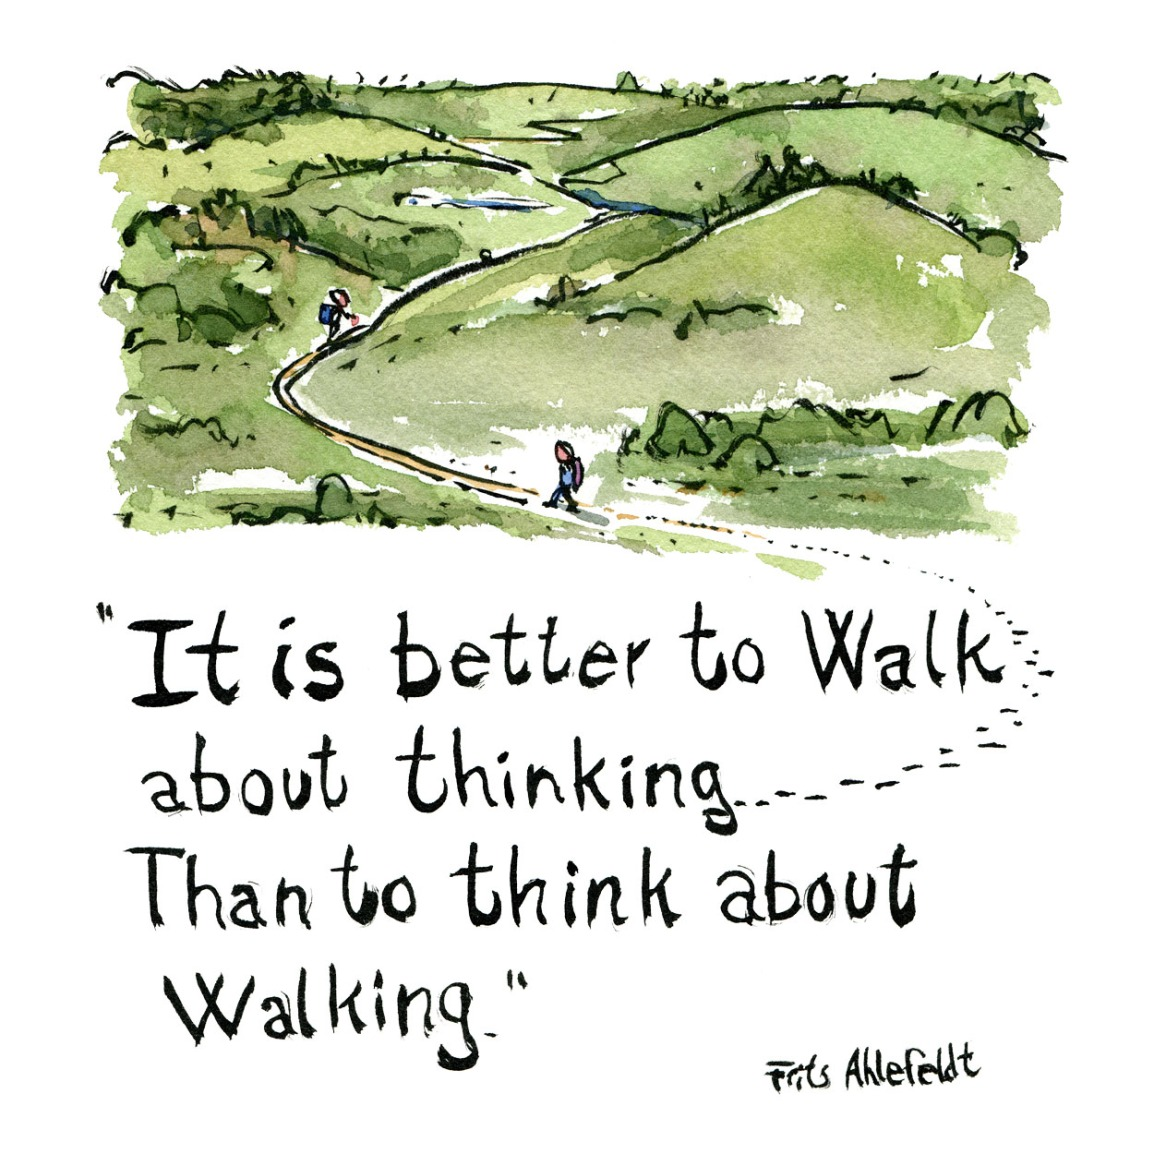 Landscape with hikers and the text handwritten it is better to walk about thinking than to think about walking - thought and illustration by Frits Ahlefeldt